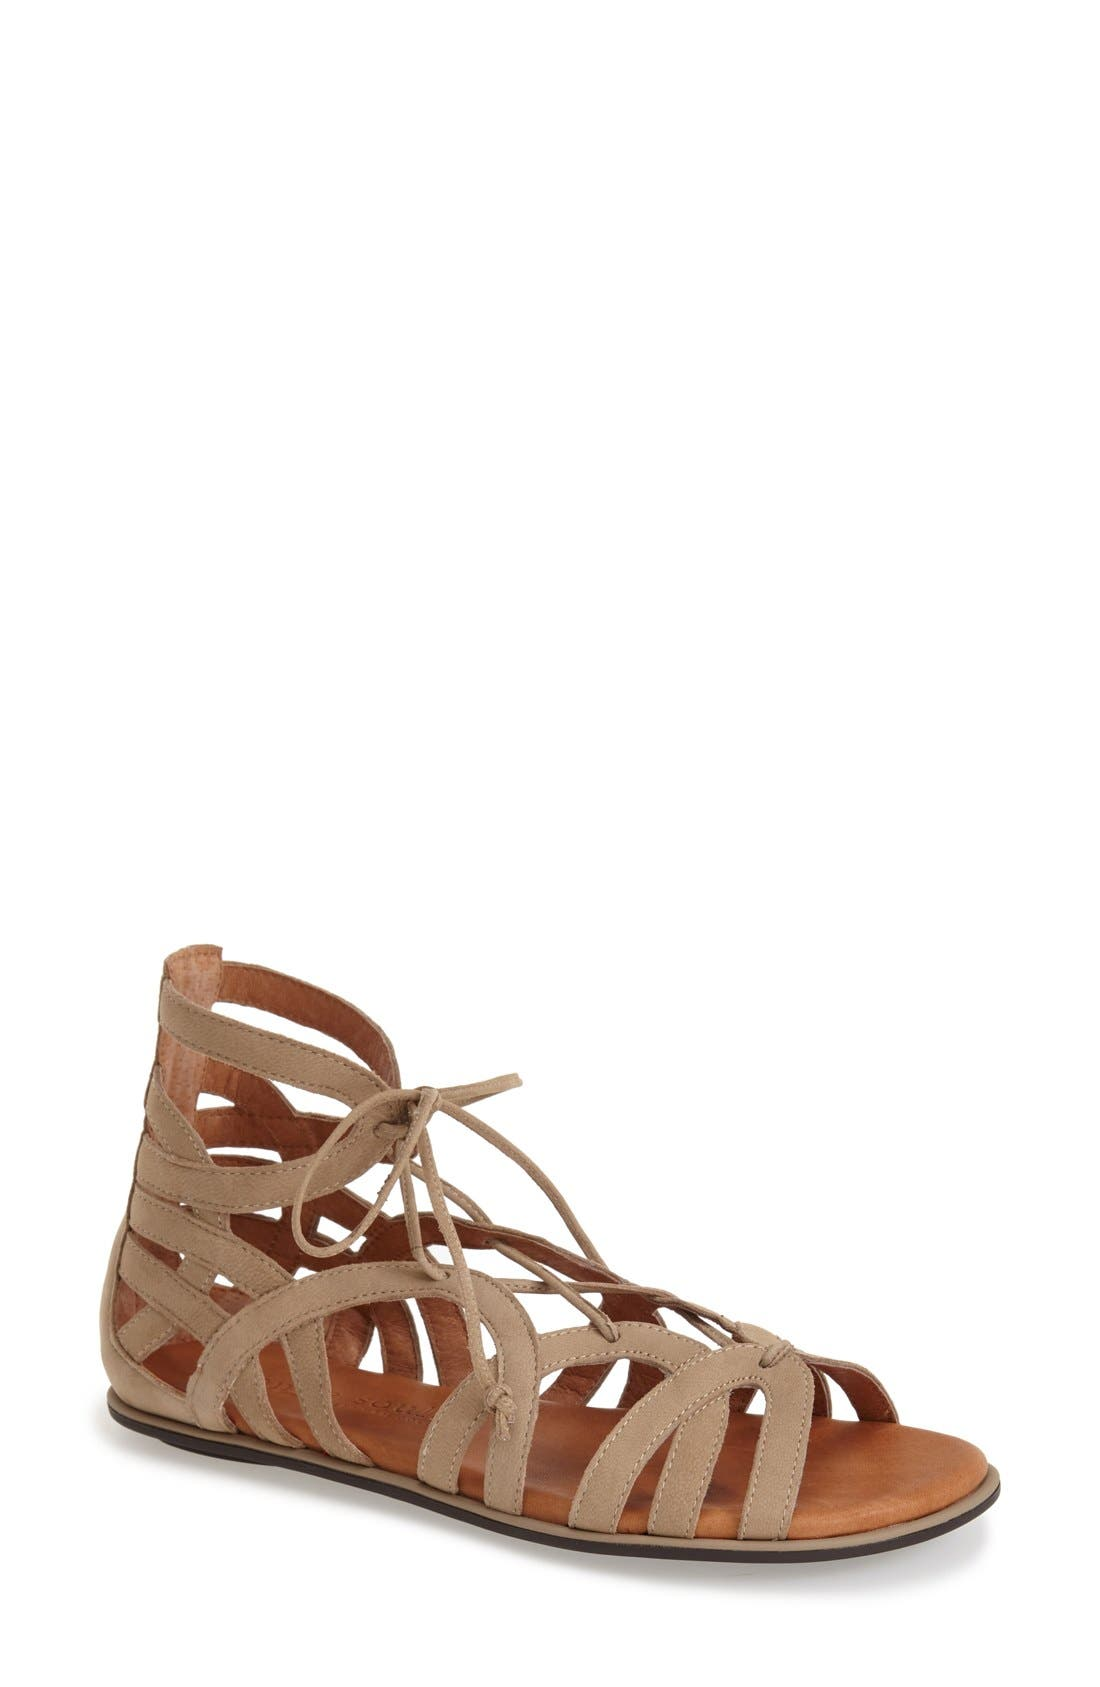 GENTLE SOULS BY KENNETH COLE 'Break My Heart 3' Cage Sandal, Main, color, TAUPE SUEDE